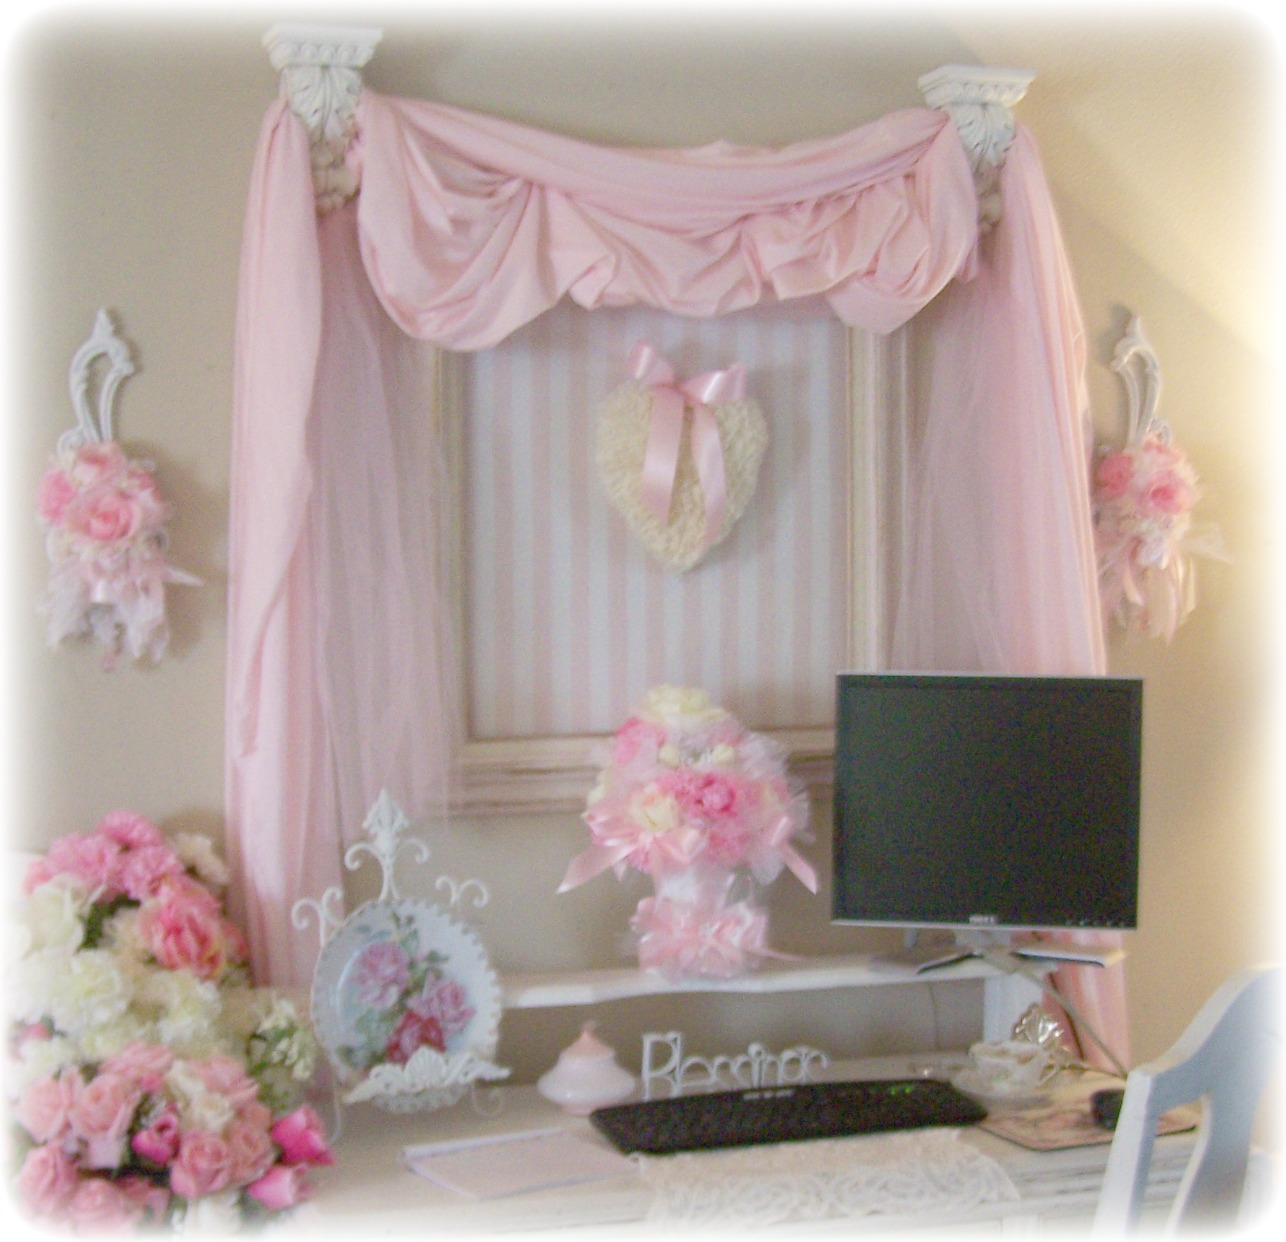 Olivia's Romantic Home: Shabby Chic Office